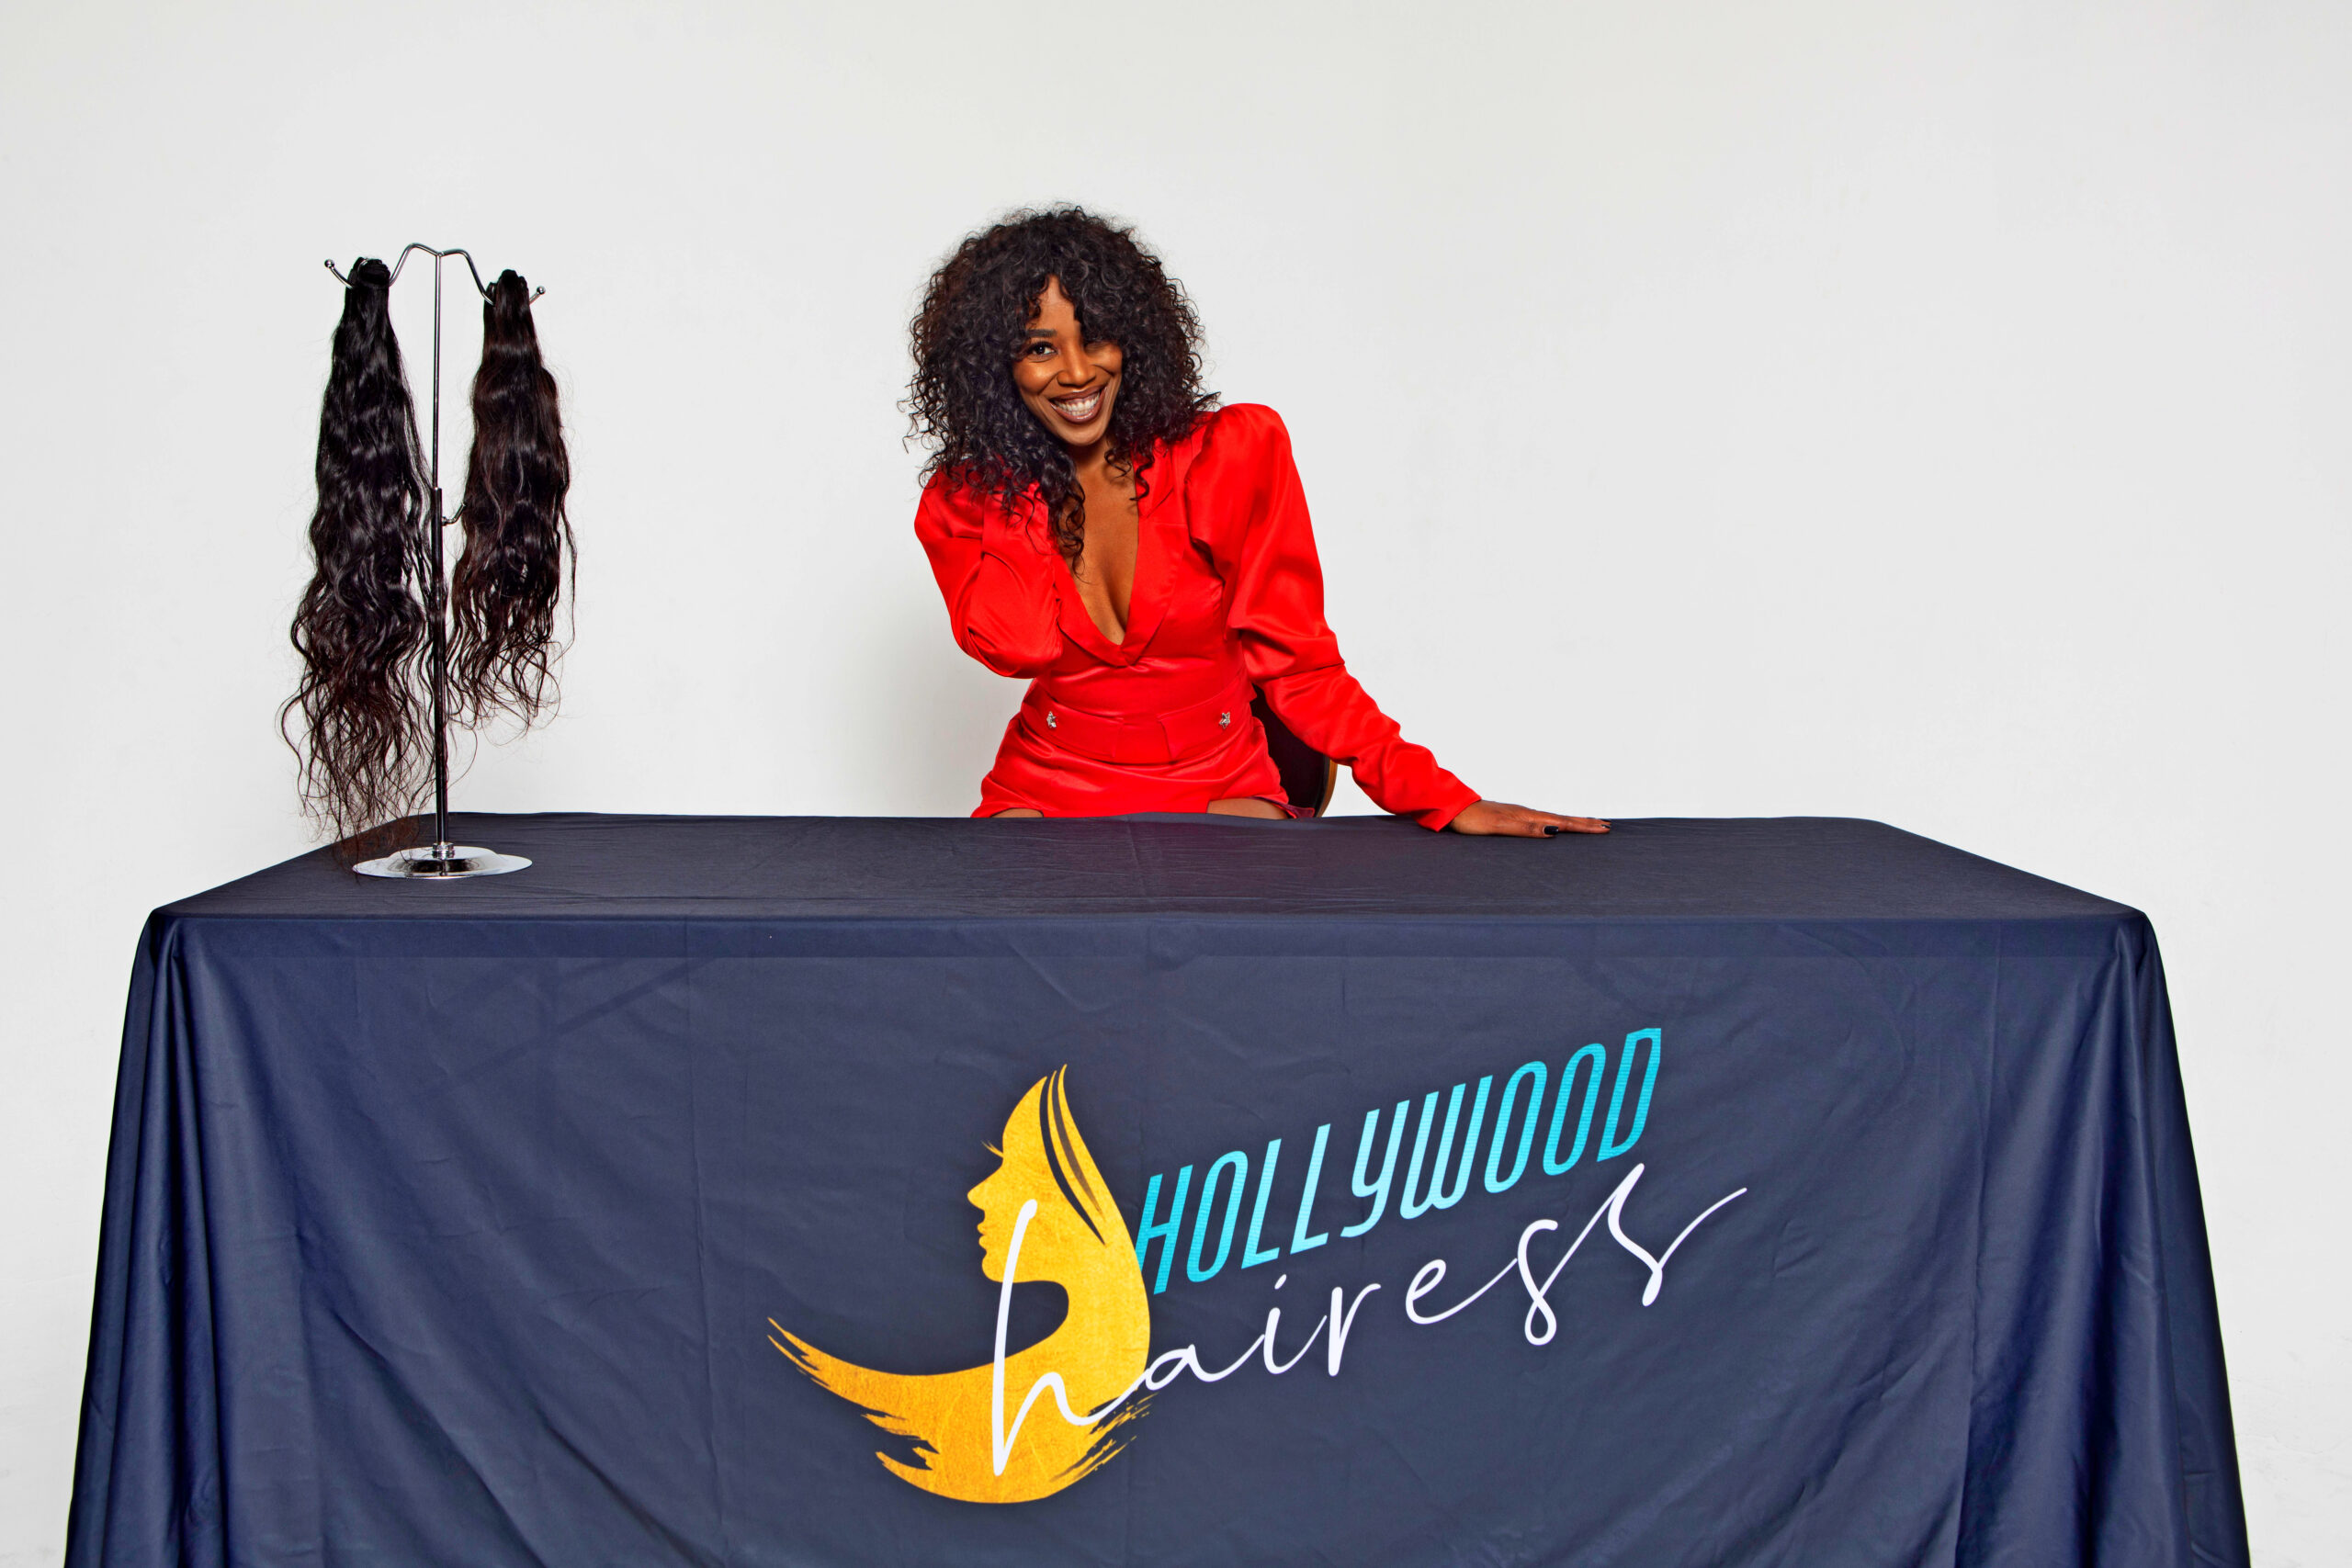 Hollywood Hairess CEO Evelyn Daniels Talks About Her Hair Company And Entrpreneurship